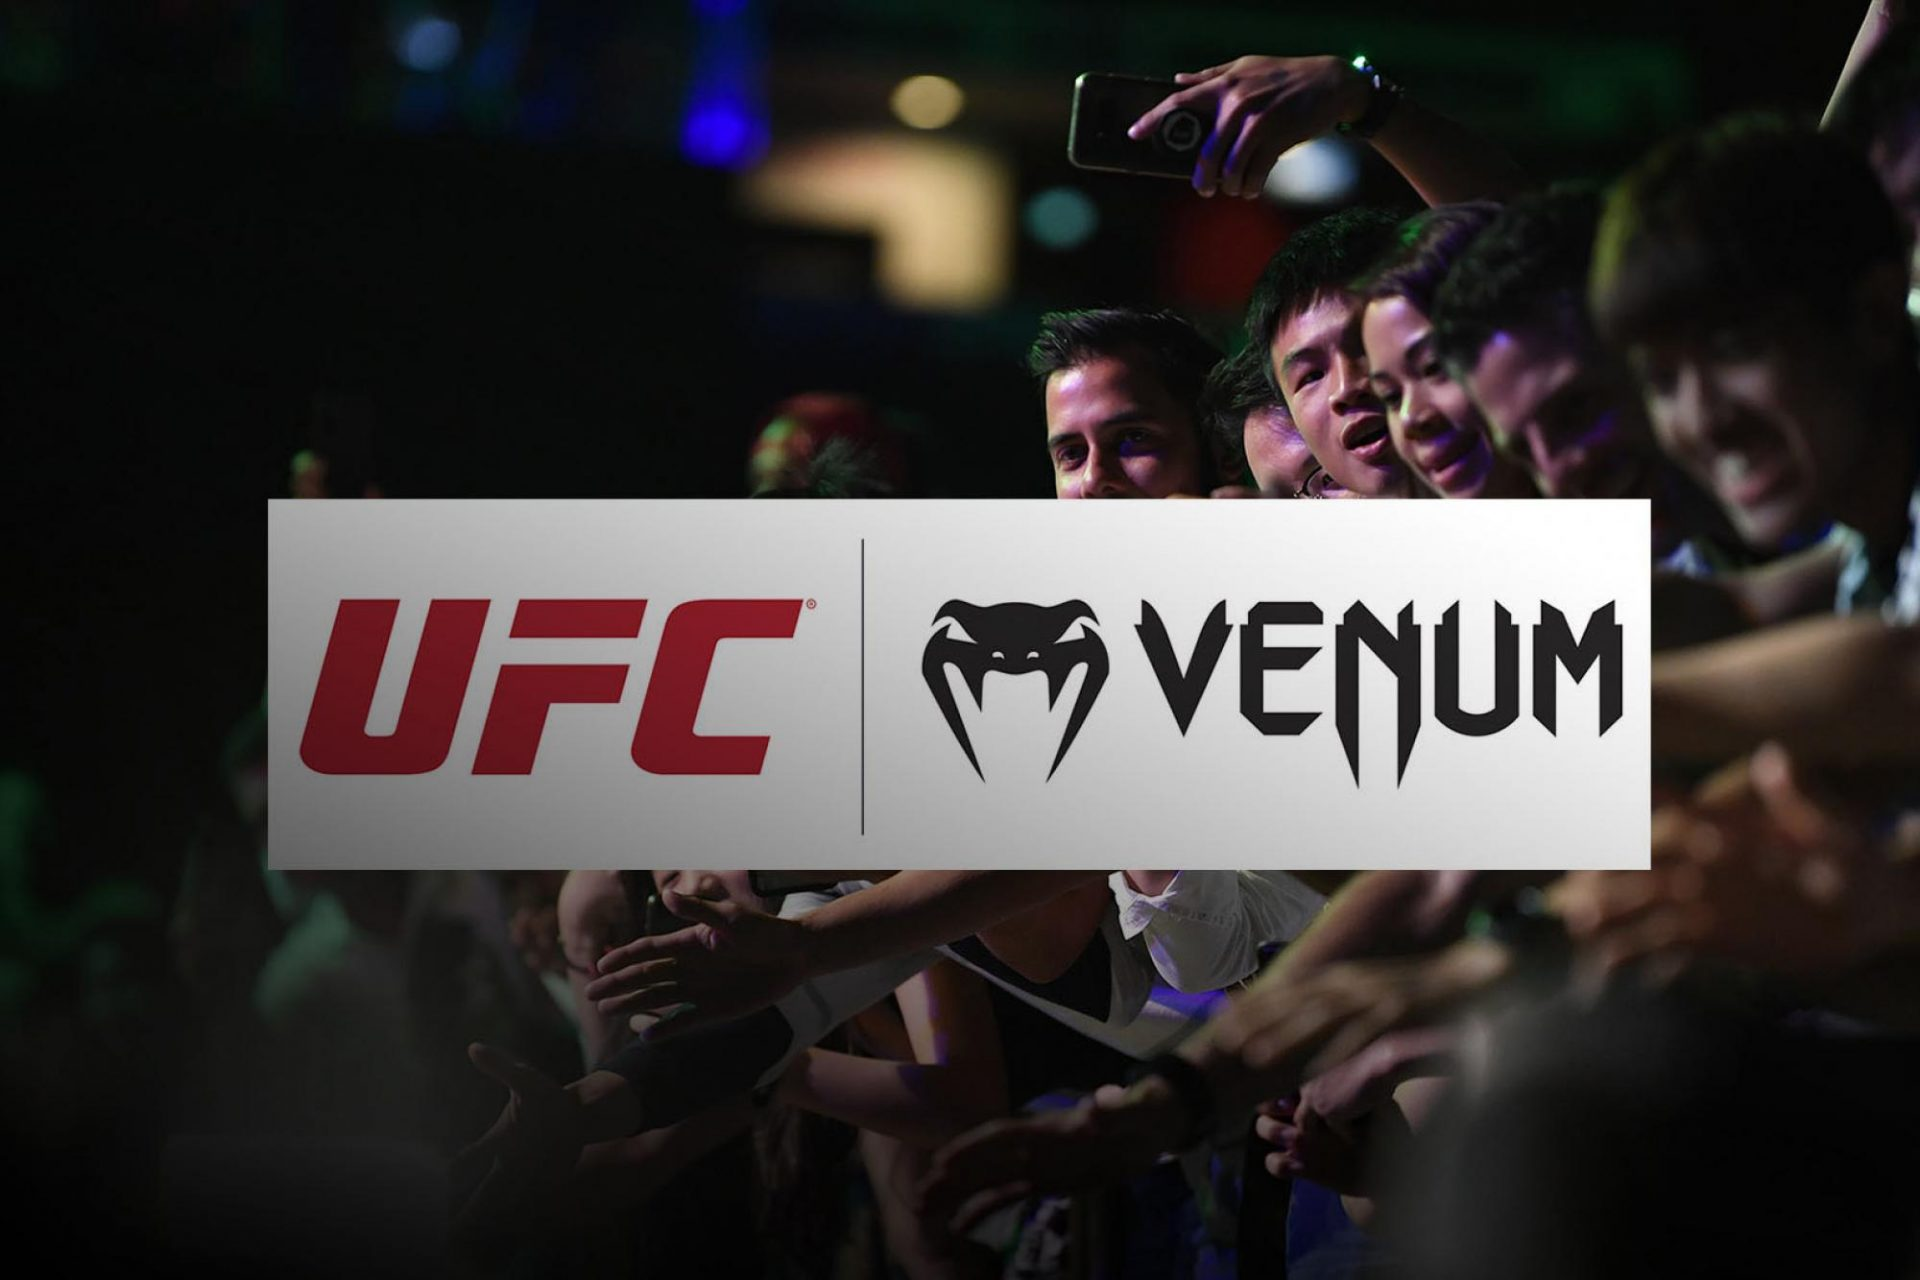 UFC's new deal with Venum apparel gives fighters slight pay raise - Venum